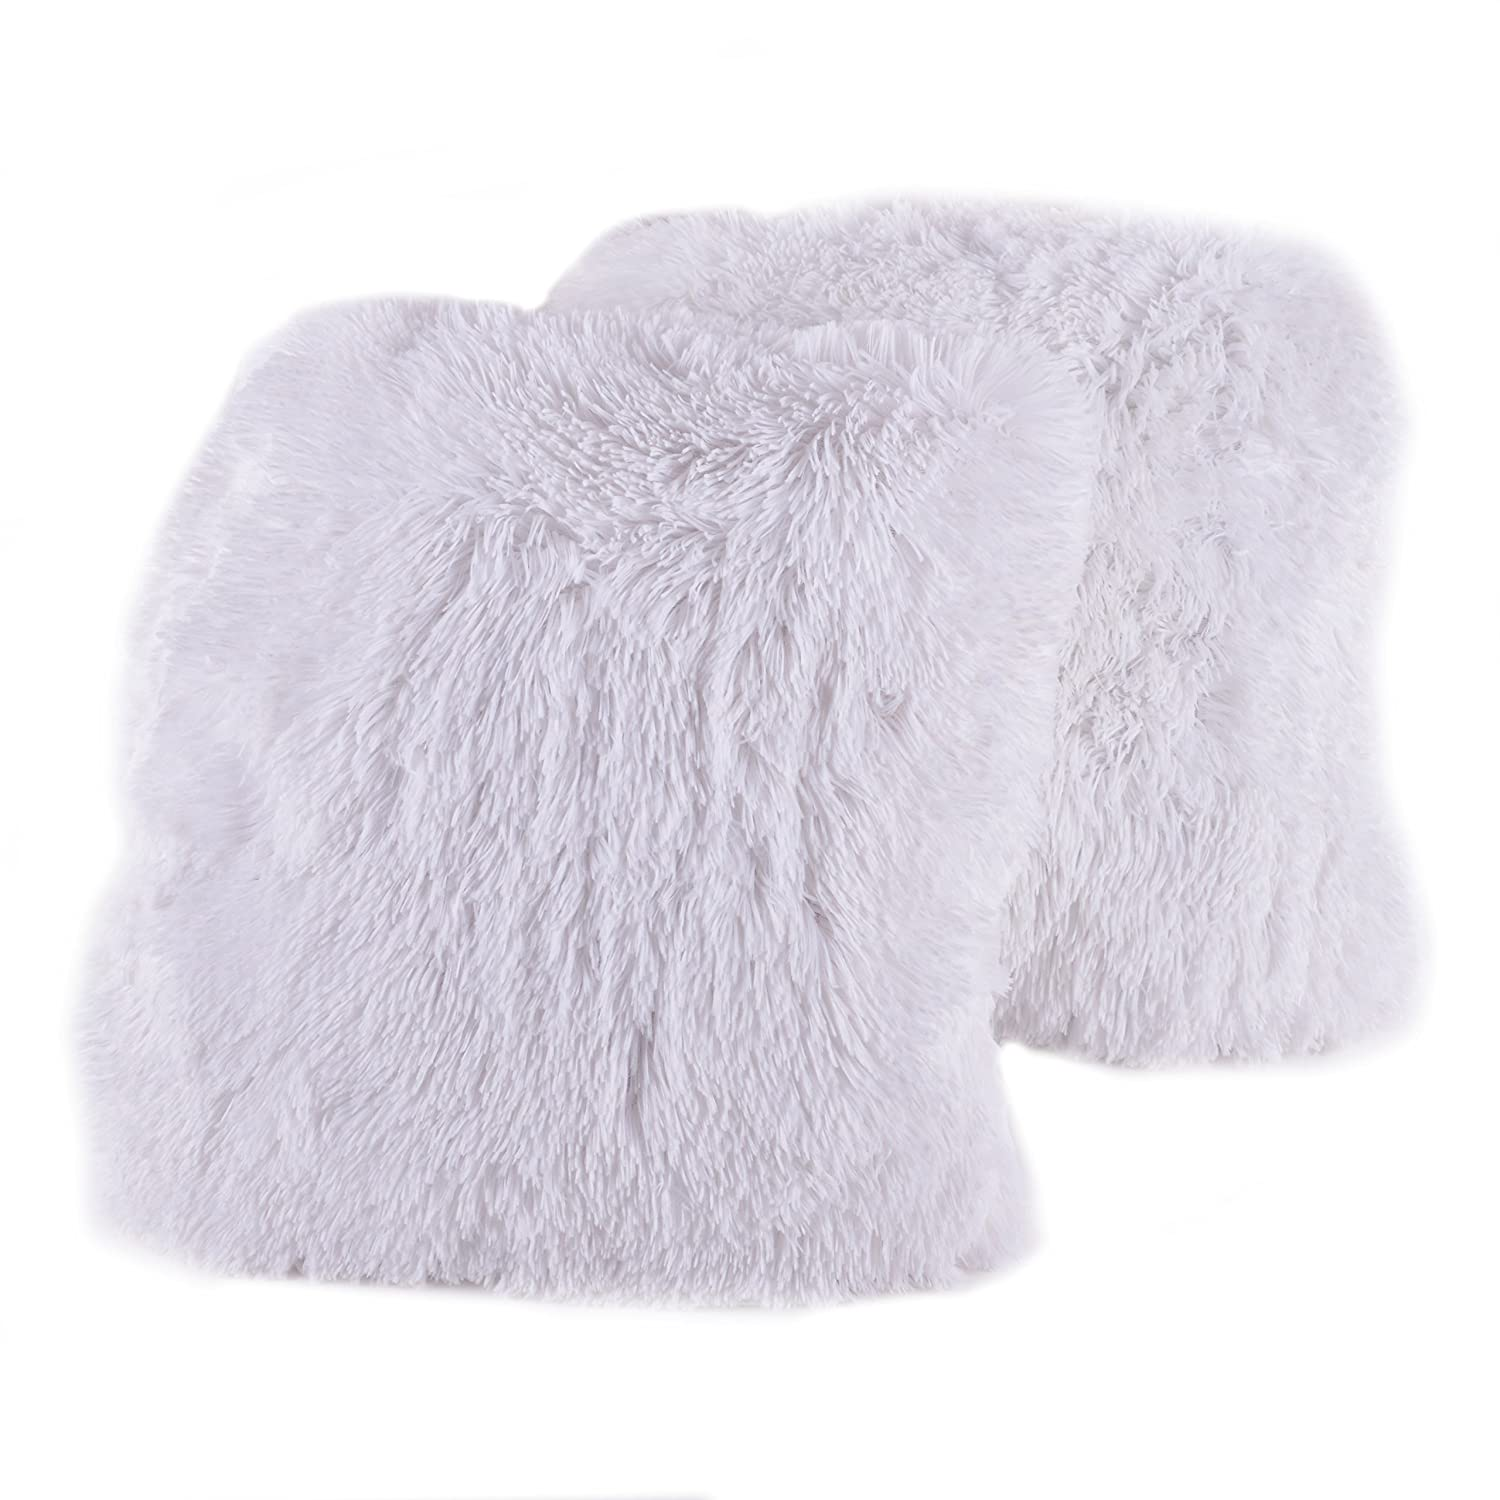 Faux Fur Throw And Pillow Set : Plush Pillow Throw Pillow Faux Fur Set 2 Pack White Soft Comfy Bedding Decor New eBay